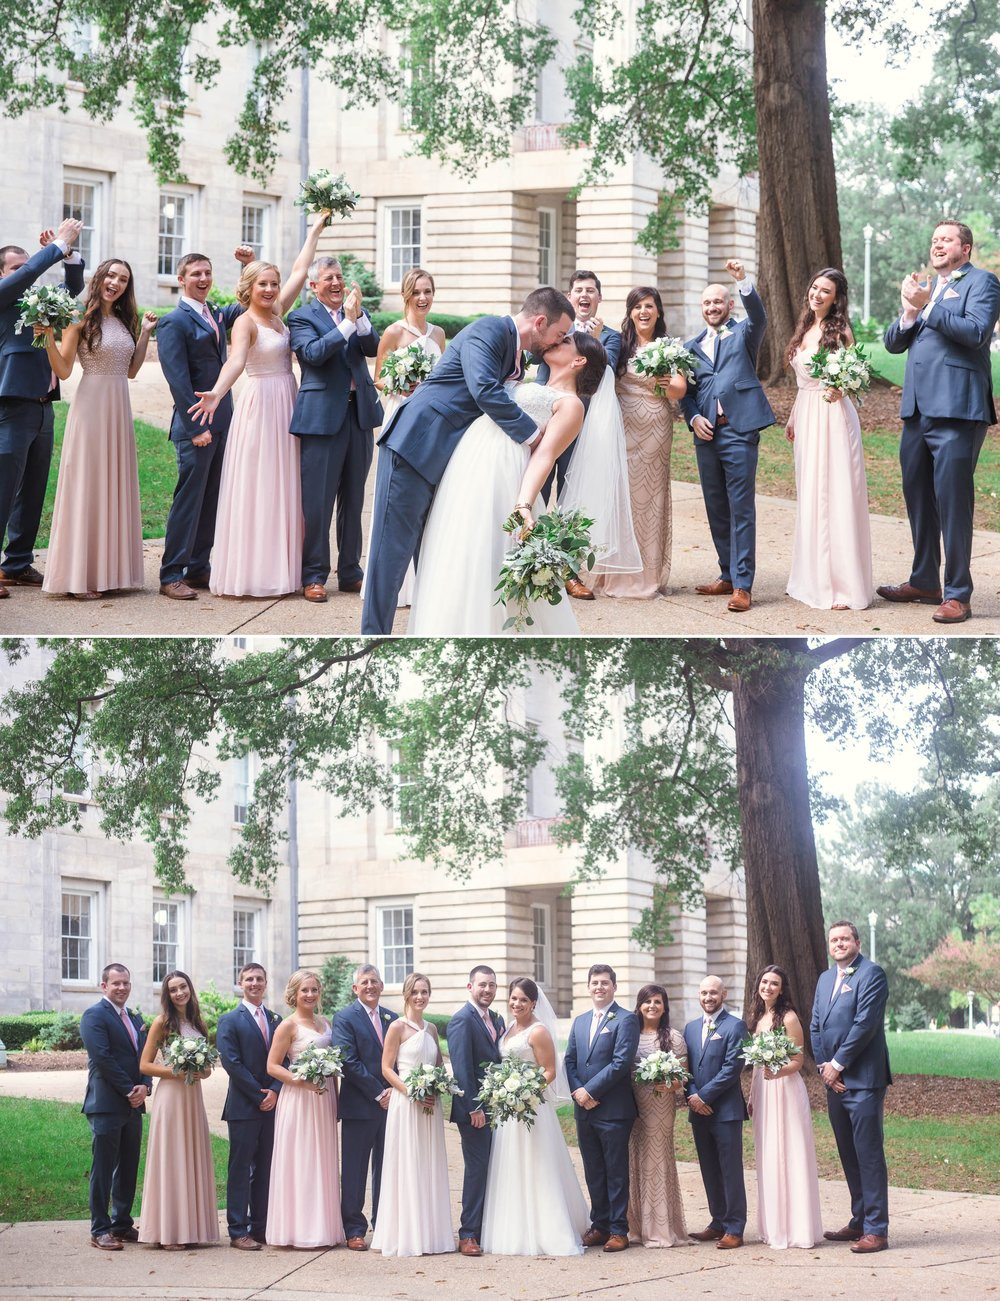 Wedding Party at Moore Square Downtown - Clare + Wallace - The Jiddy Space - Raleigh North Carolina Wedding Photographer